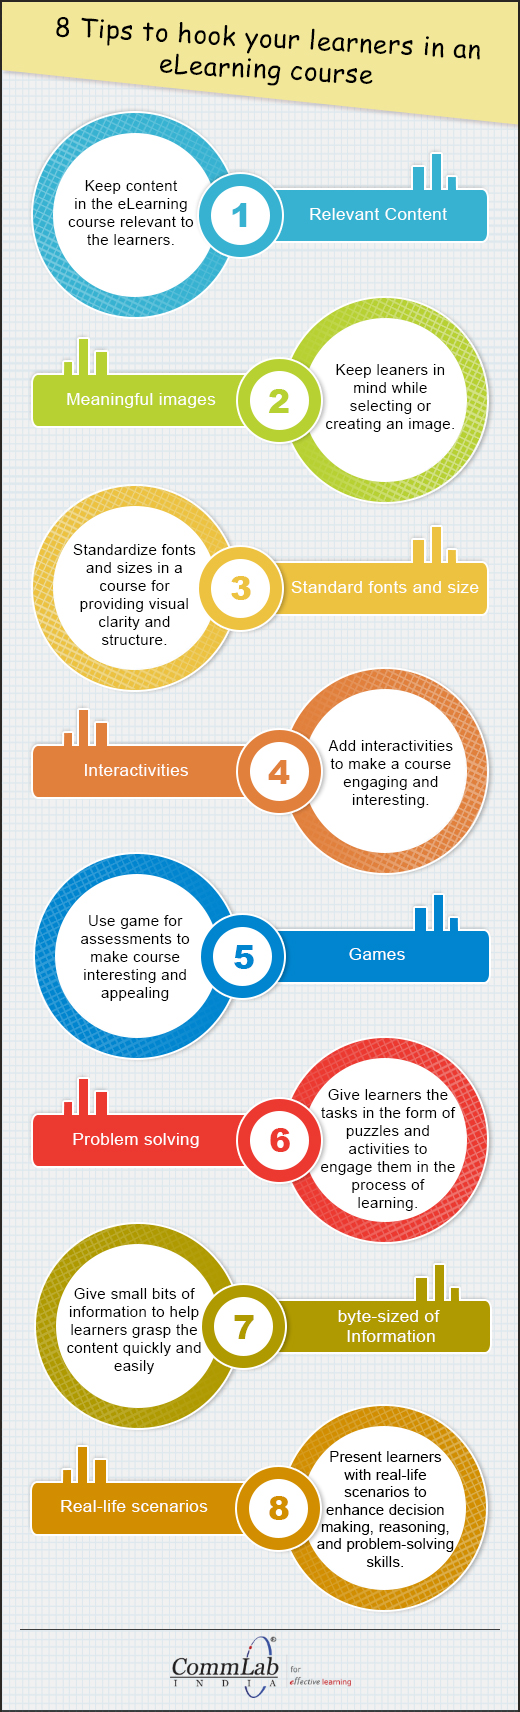 8 Tips to Hook your Learners to an E-learning Course - An Infographic